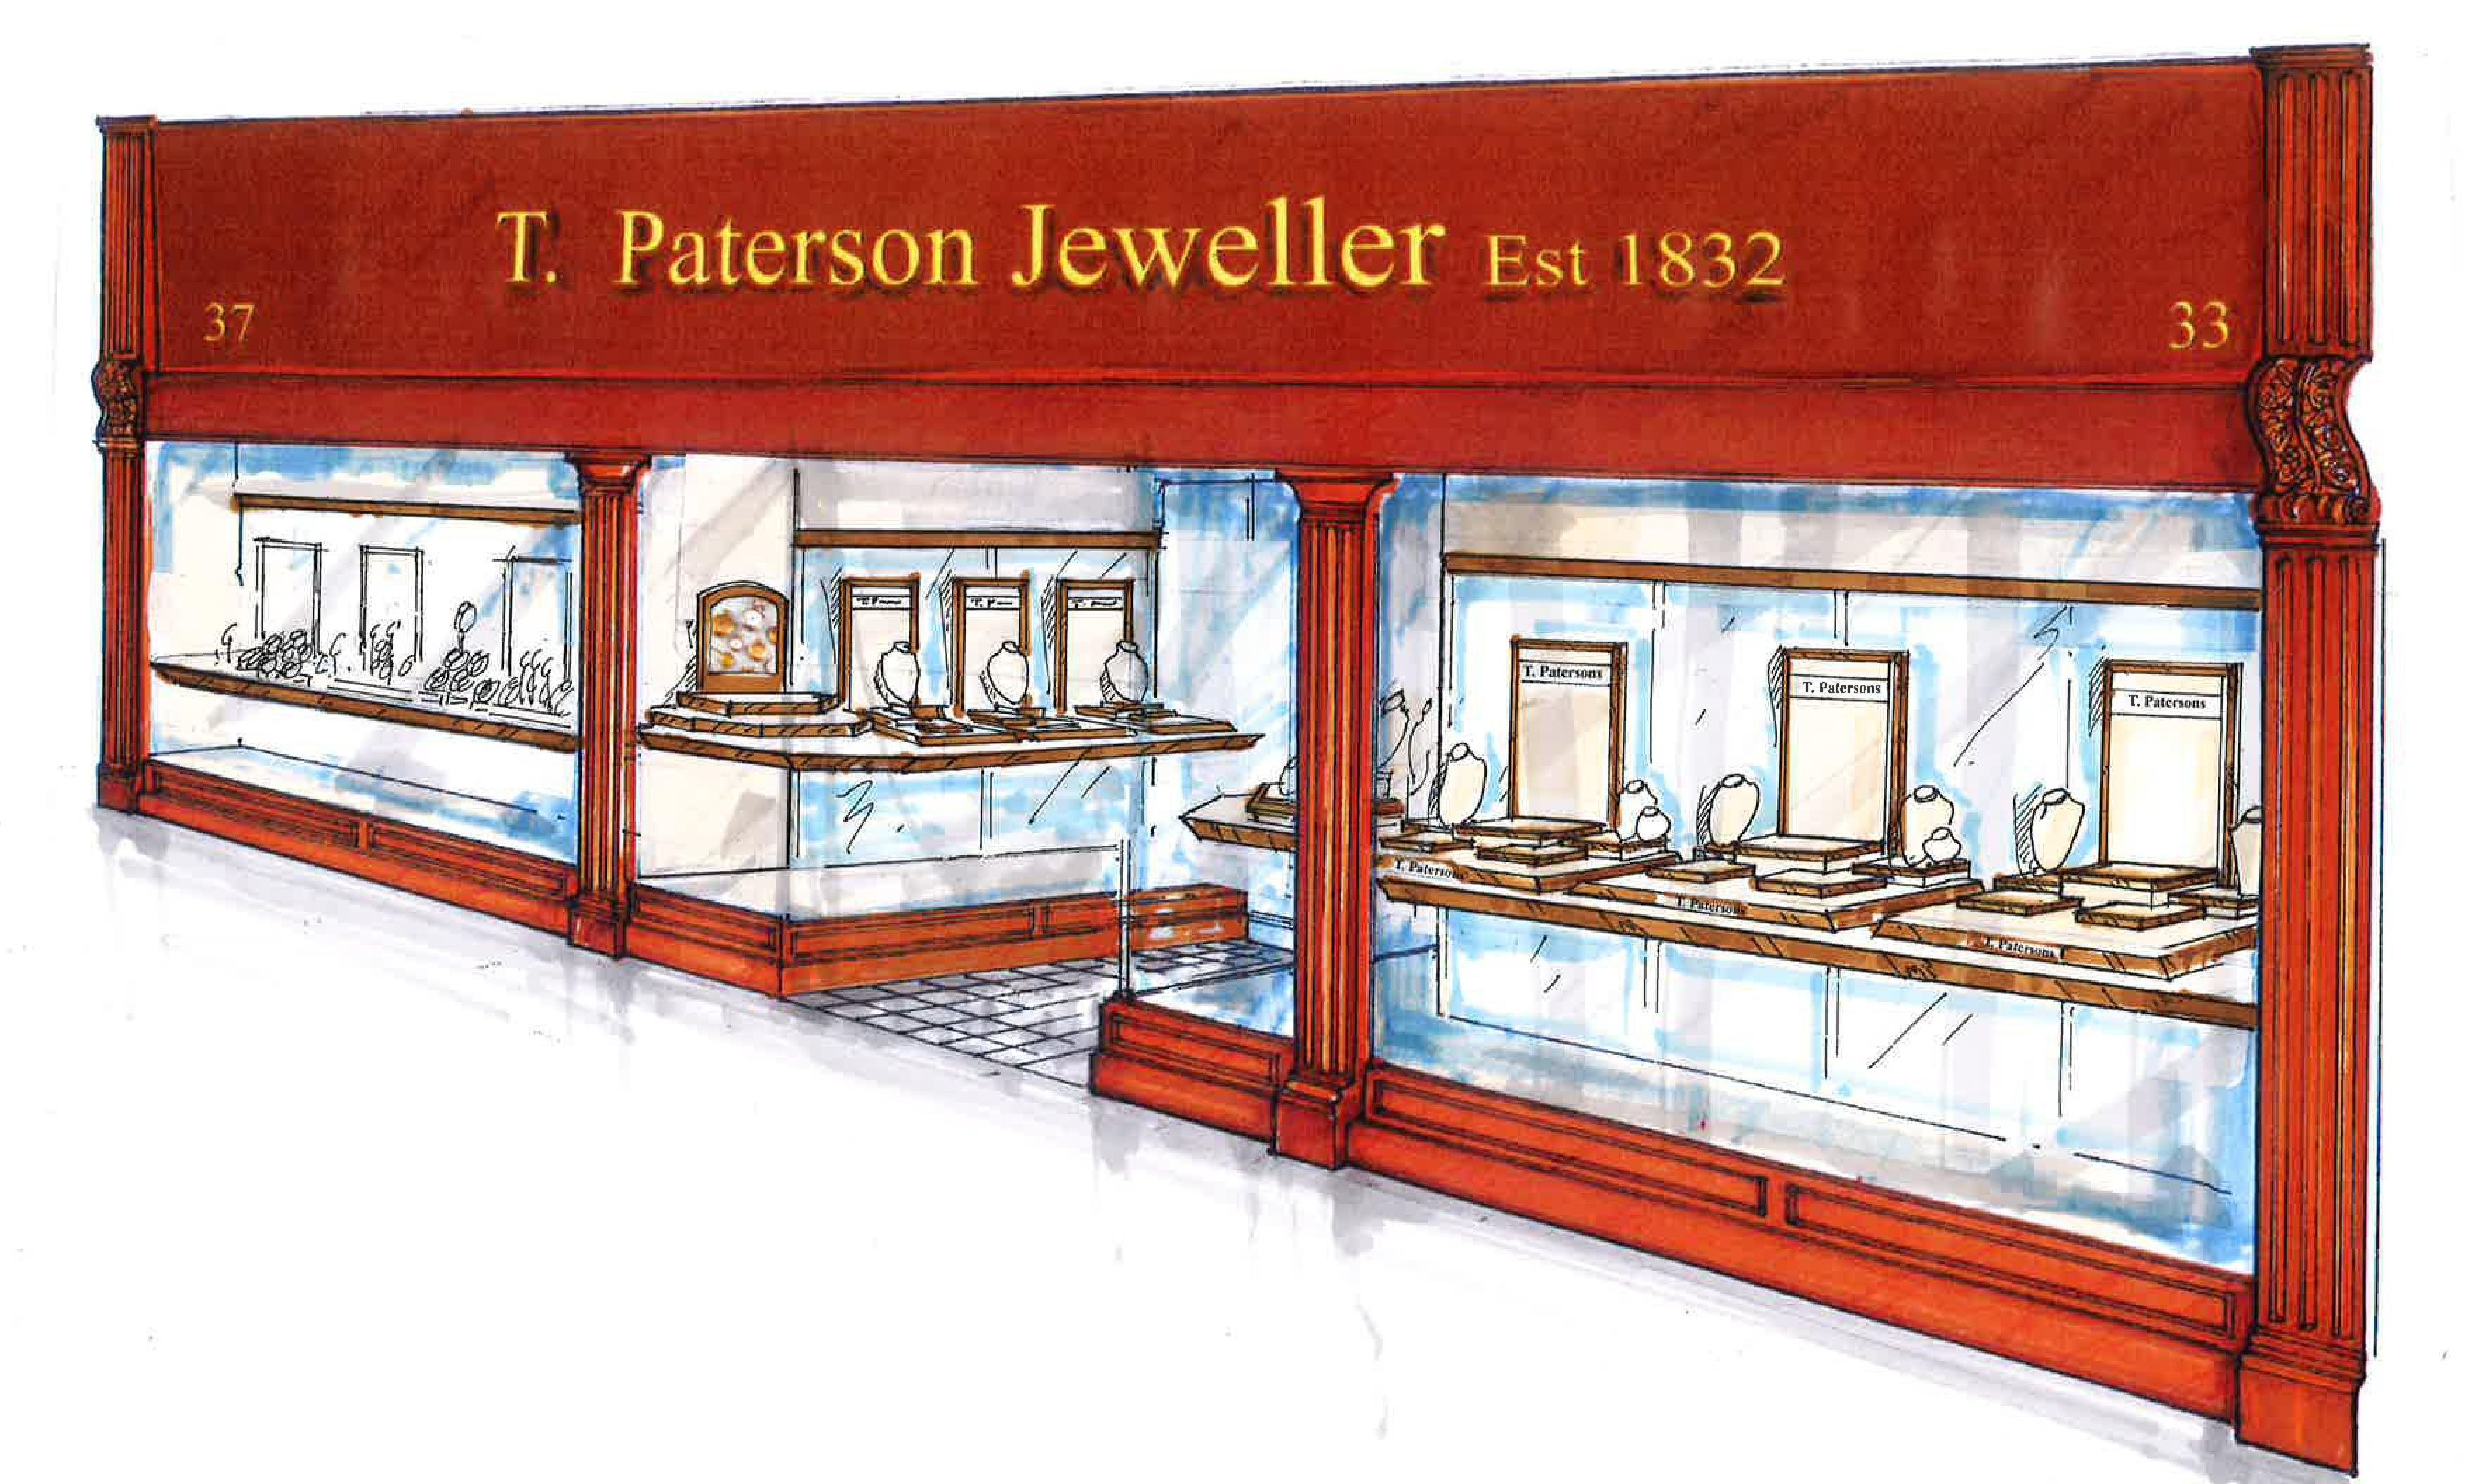 An impression of the new, expanded jewellers in Perth will look like.